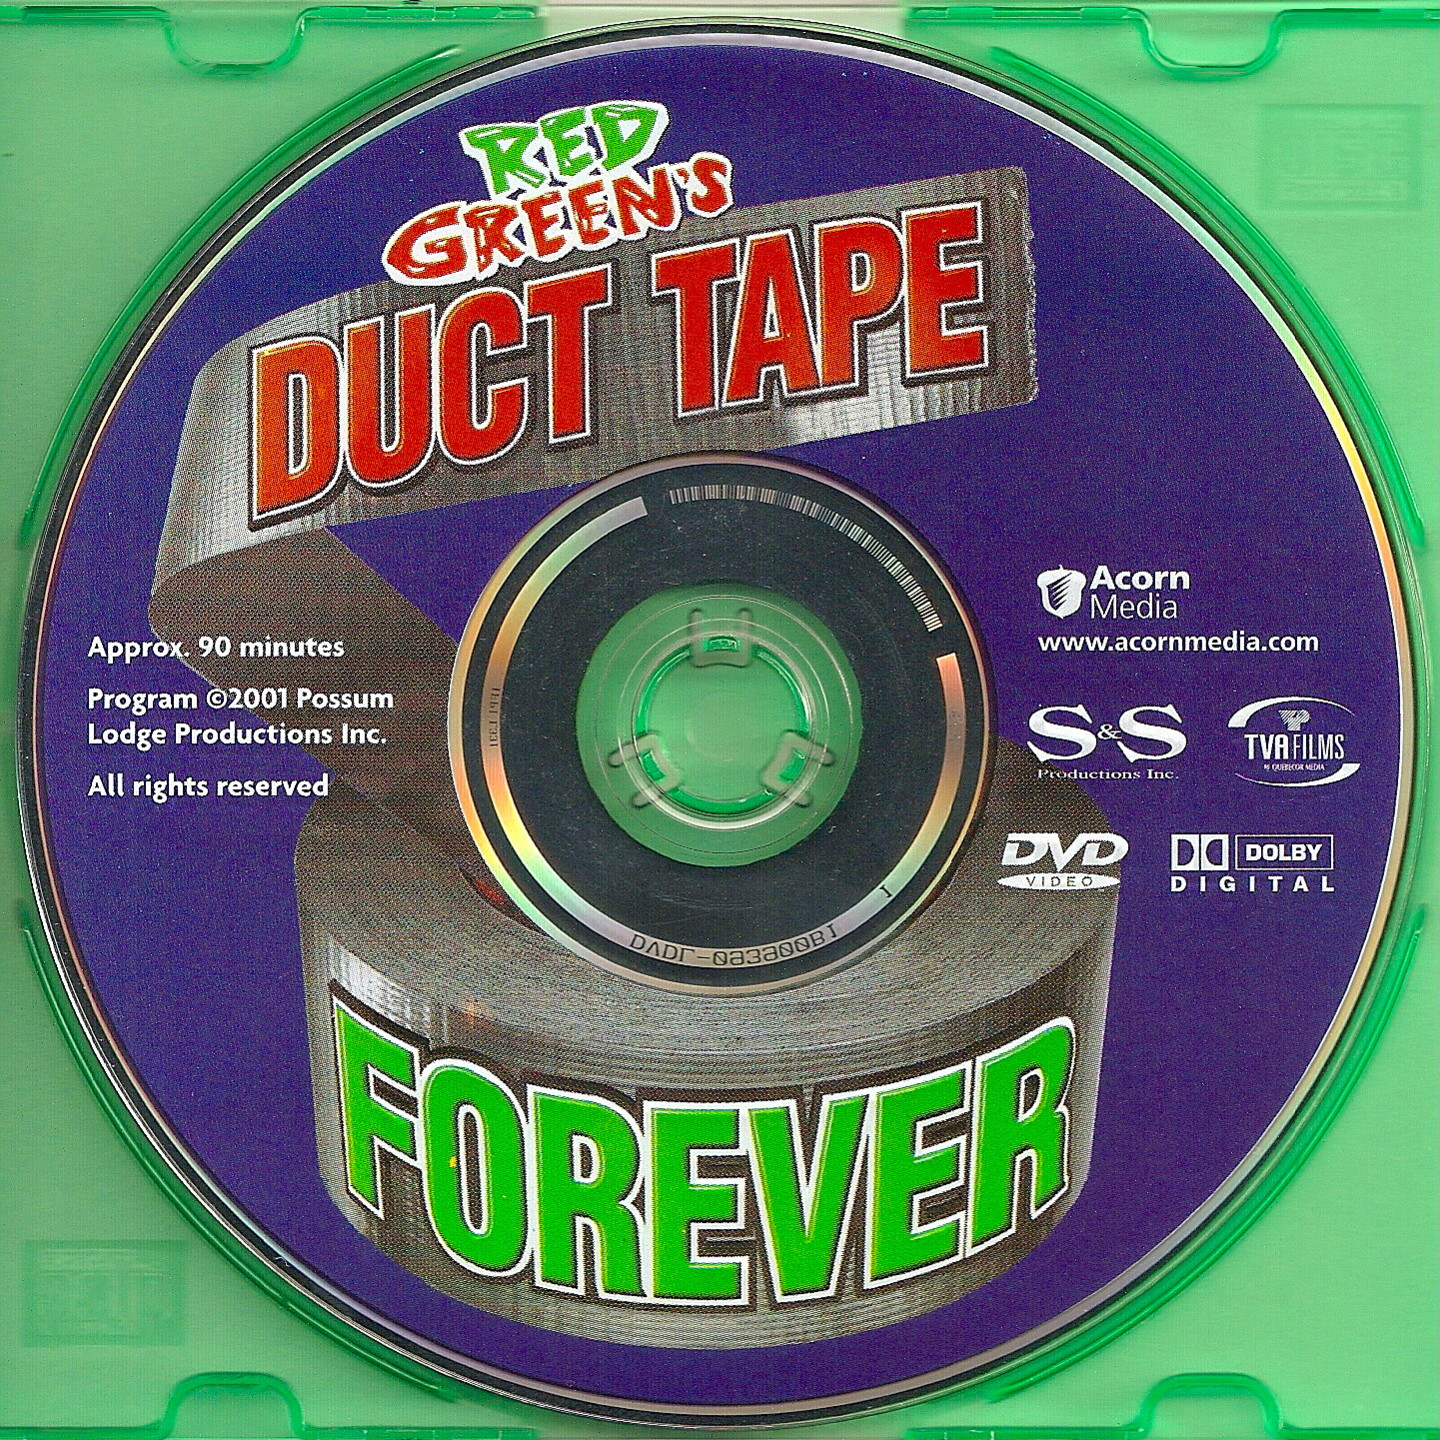 Watch Duct Tape Forever Online - tvDuck.com